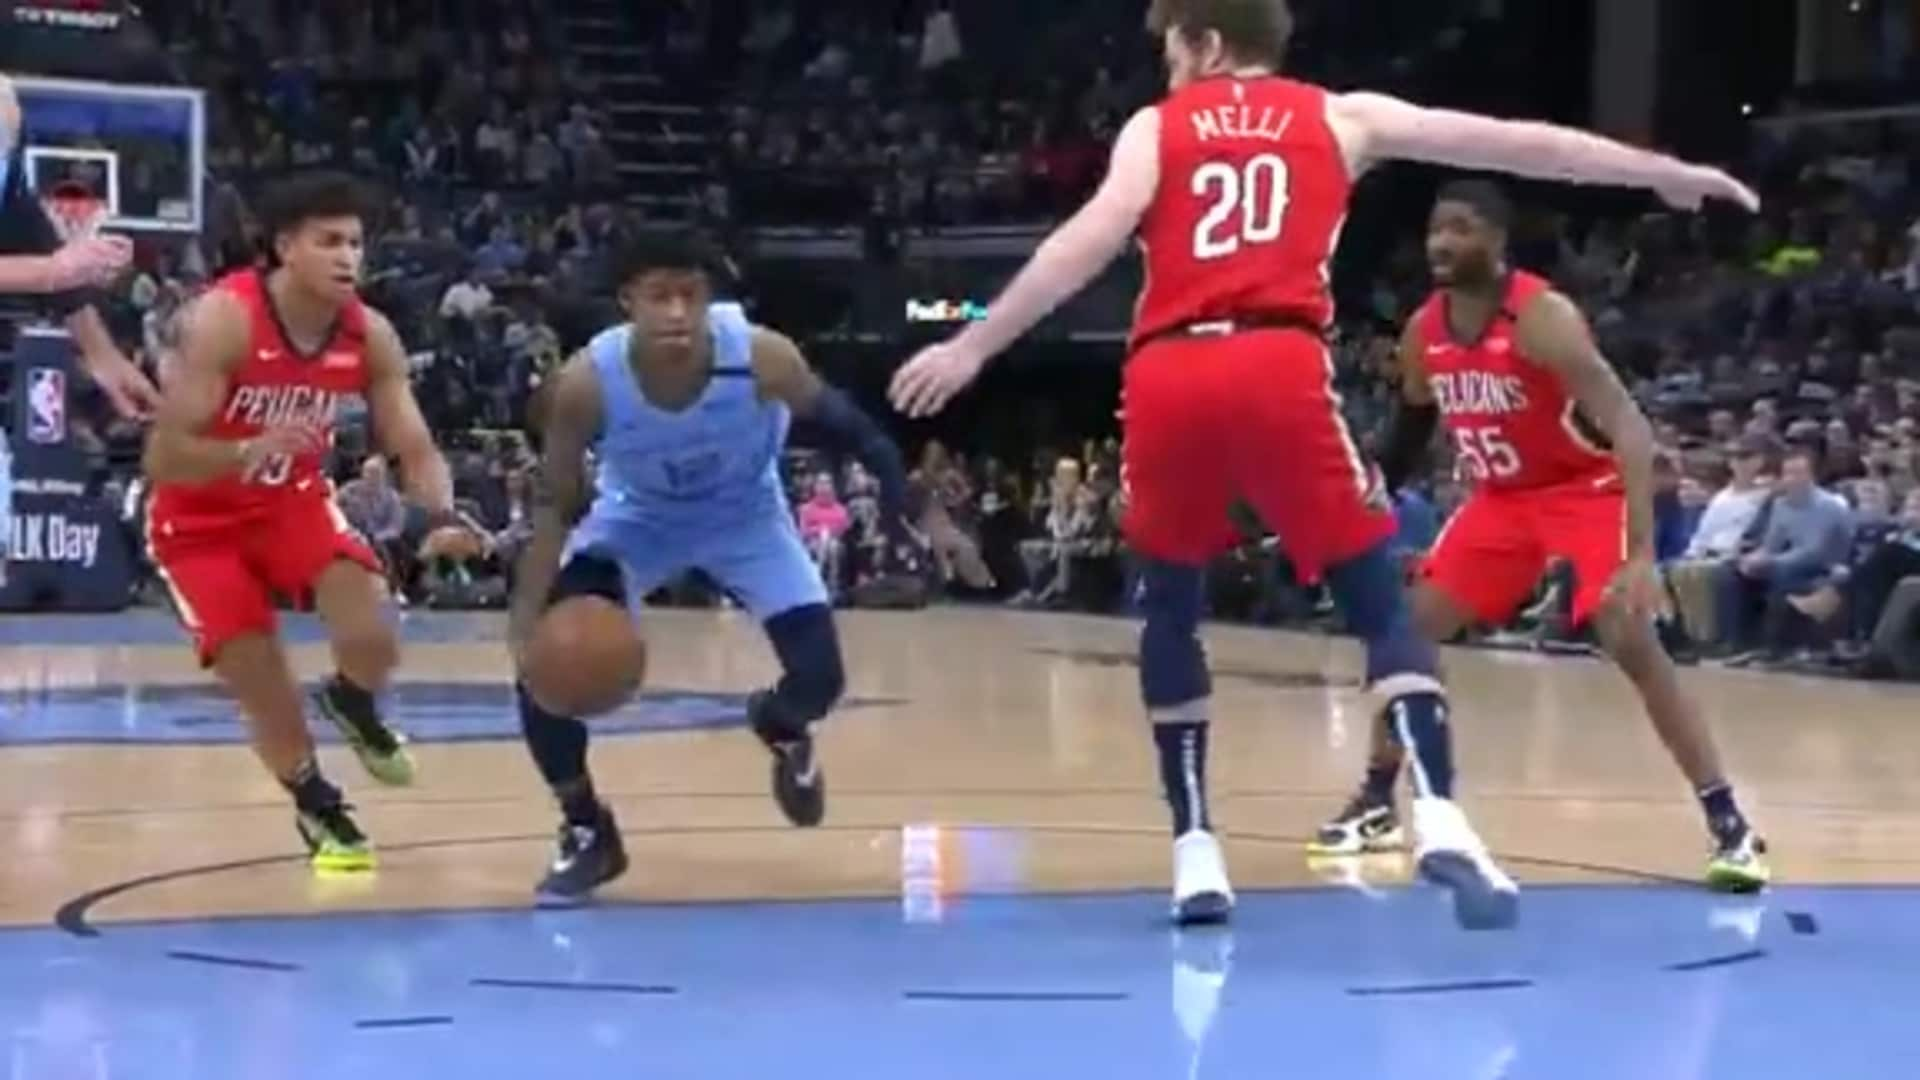 Ja shakes and bakes his way to the basket